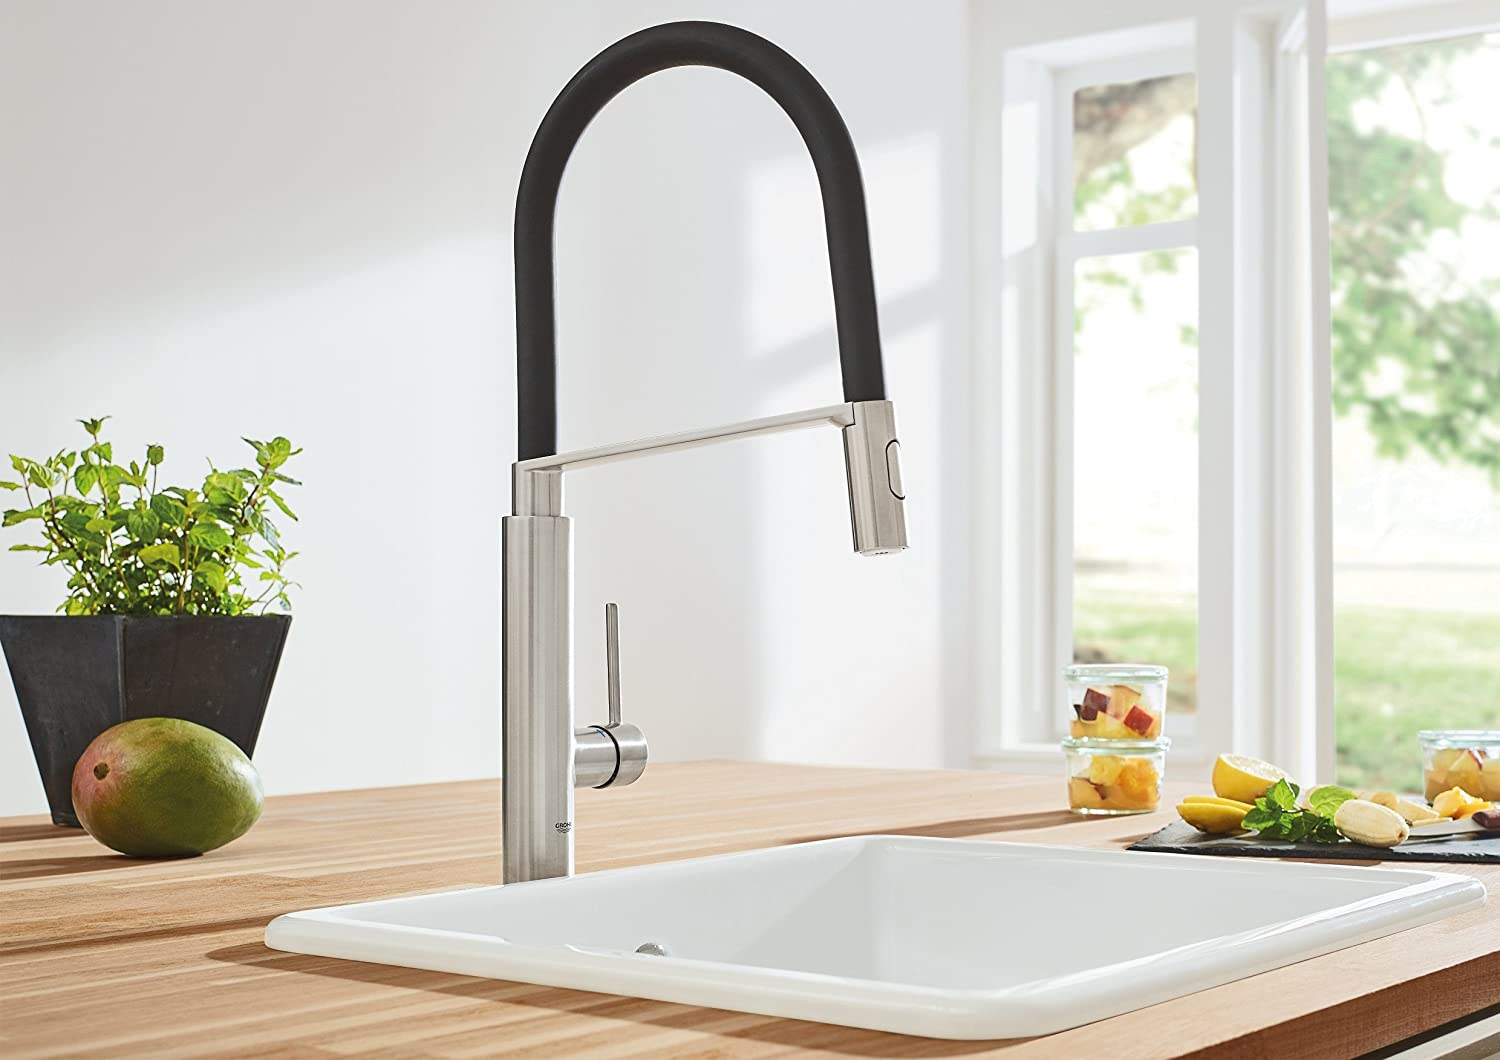 Grohe Concetto Kitchen Faucet  Concetto Kitchen Sink Mixer - Amazon grohe kitchen faucets